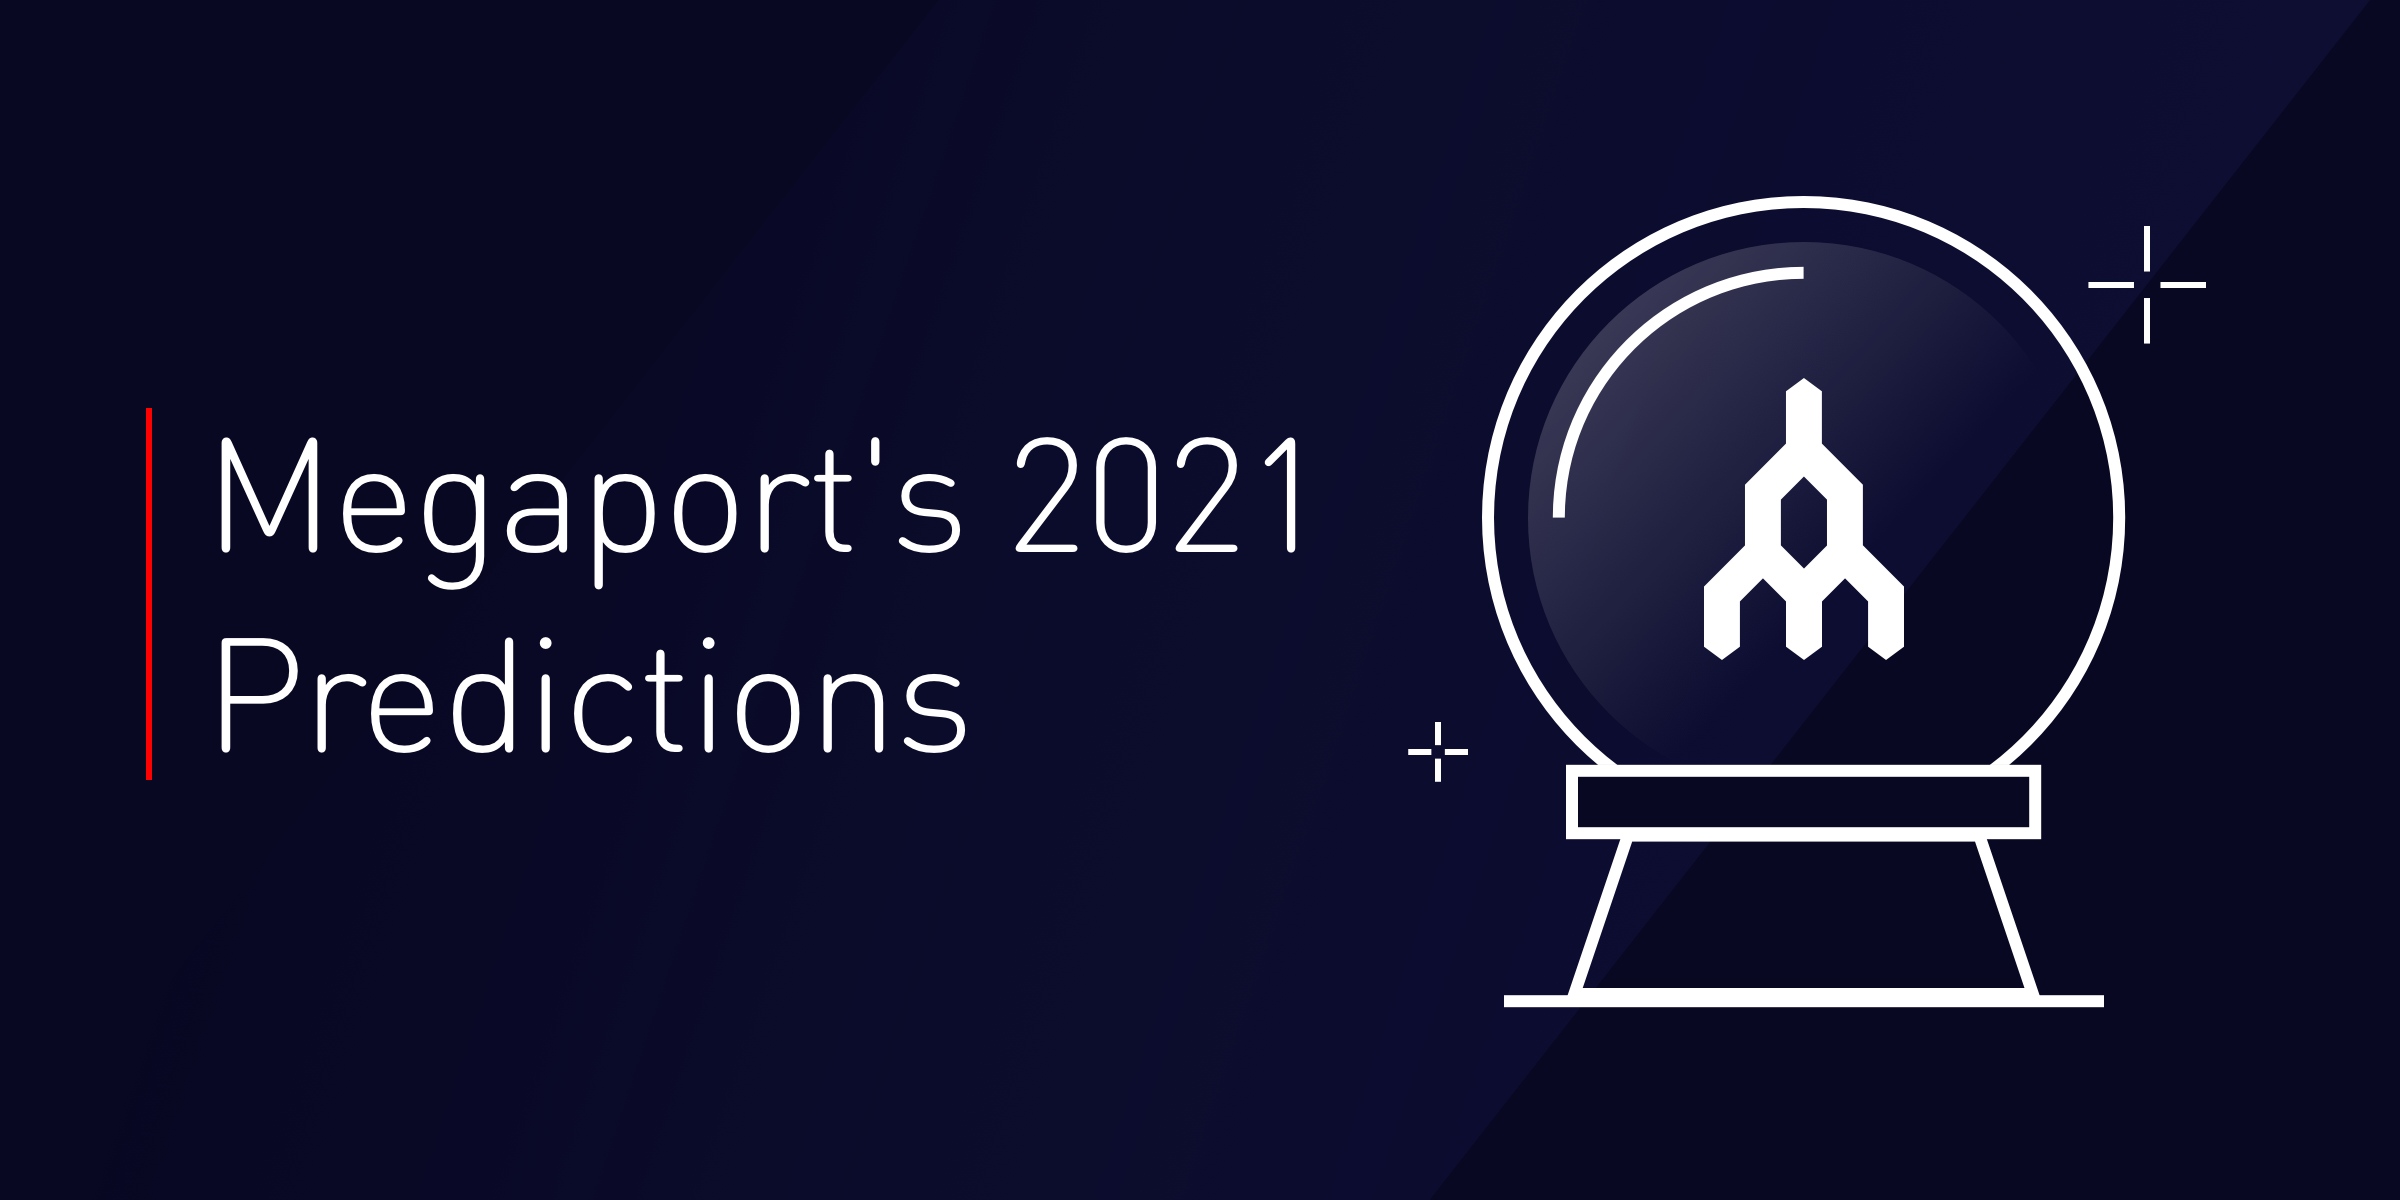 Media Roundup of Megaport 2021 Predictions